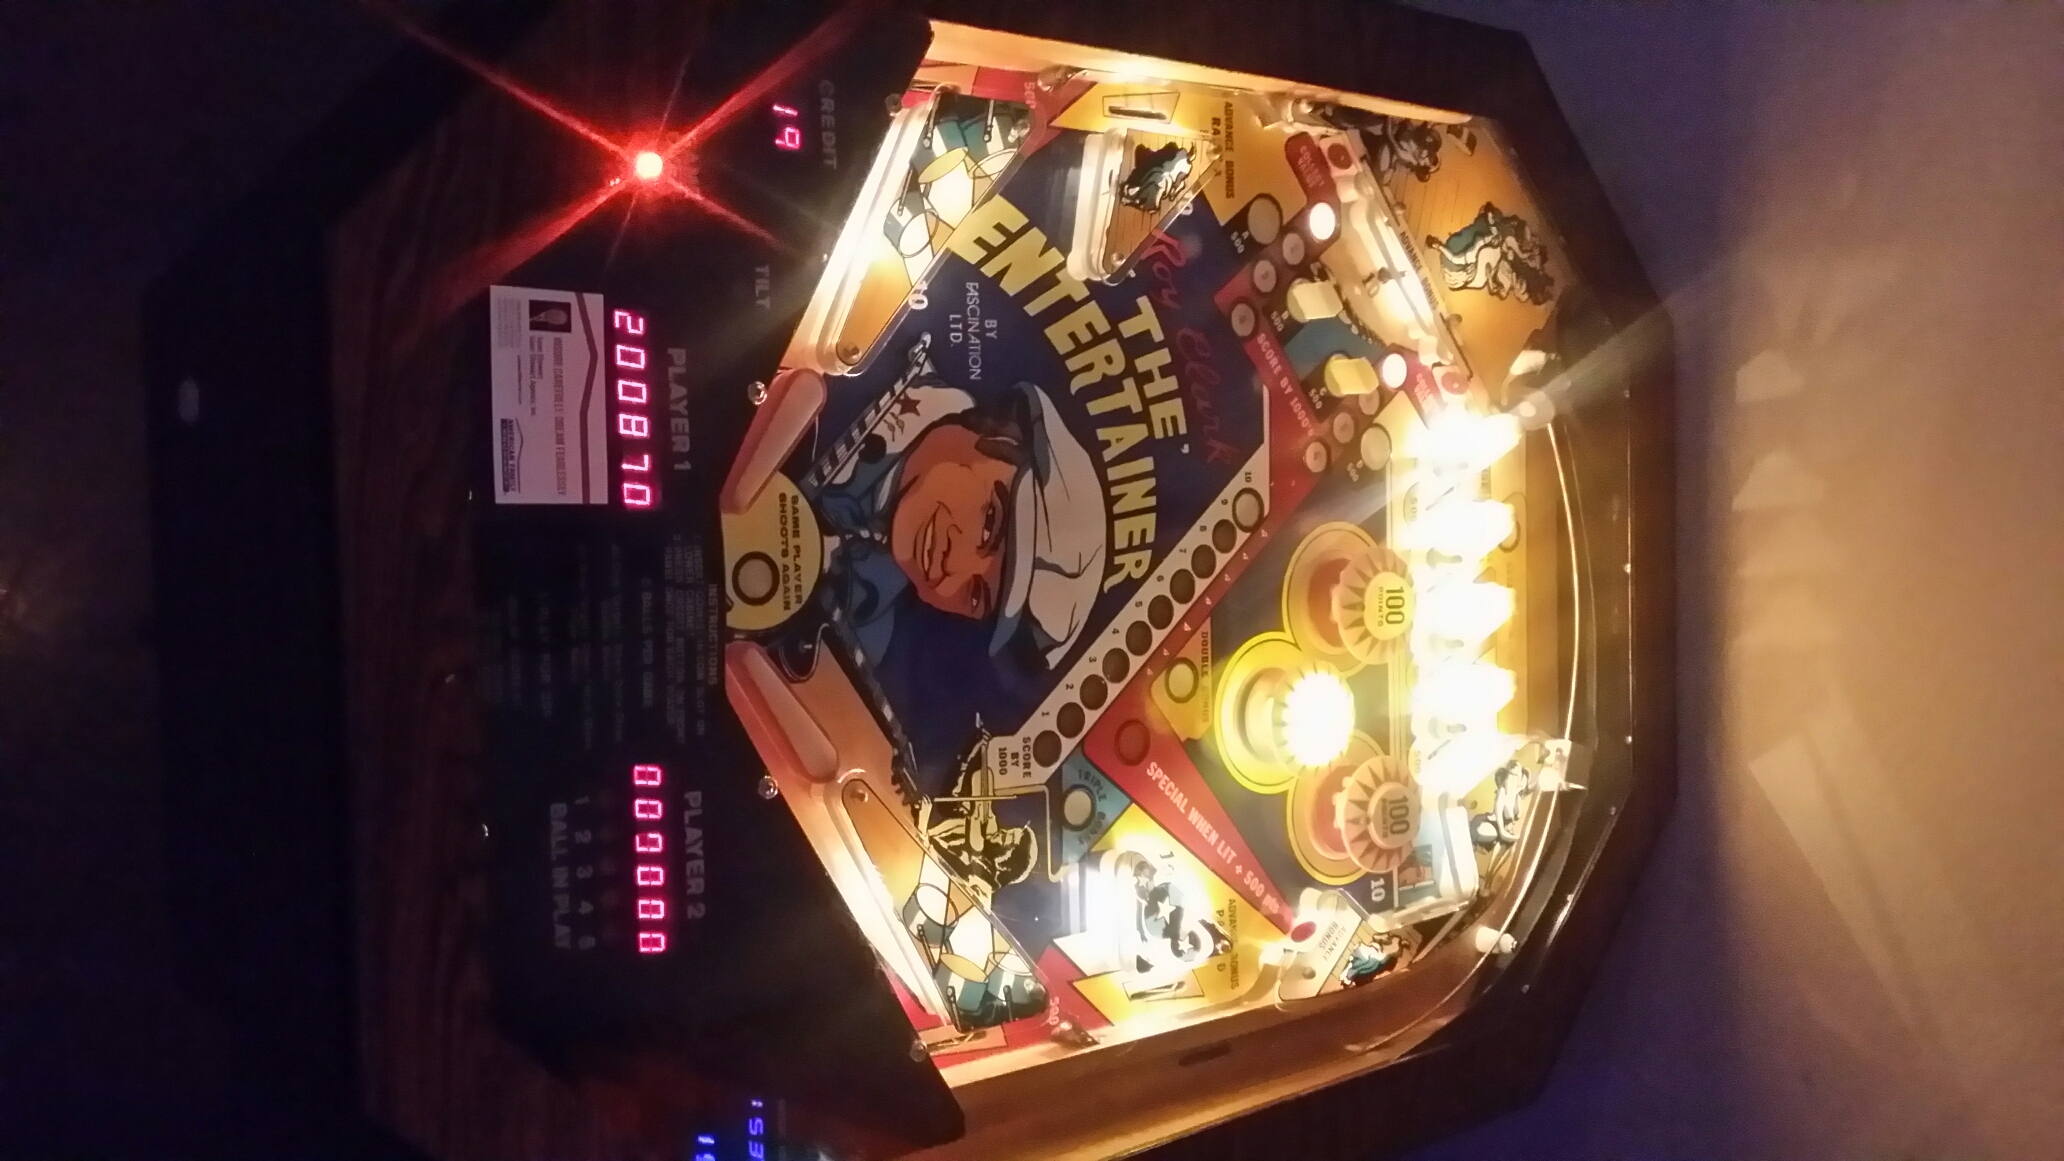 SeanStewart: The Entertainer [aka Roy Clark The Entertainer] (Pinball: 5 Balls) 200,870 points on 2016-12-10 12:44:08